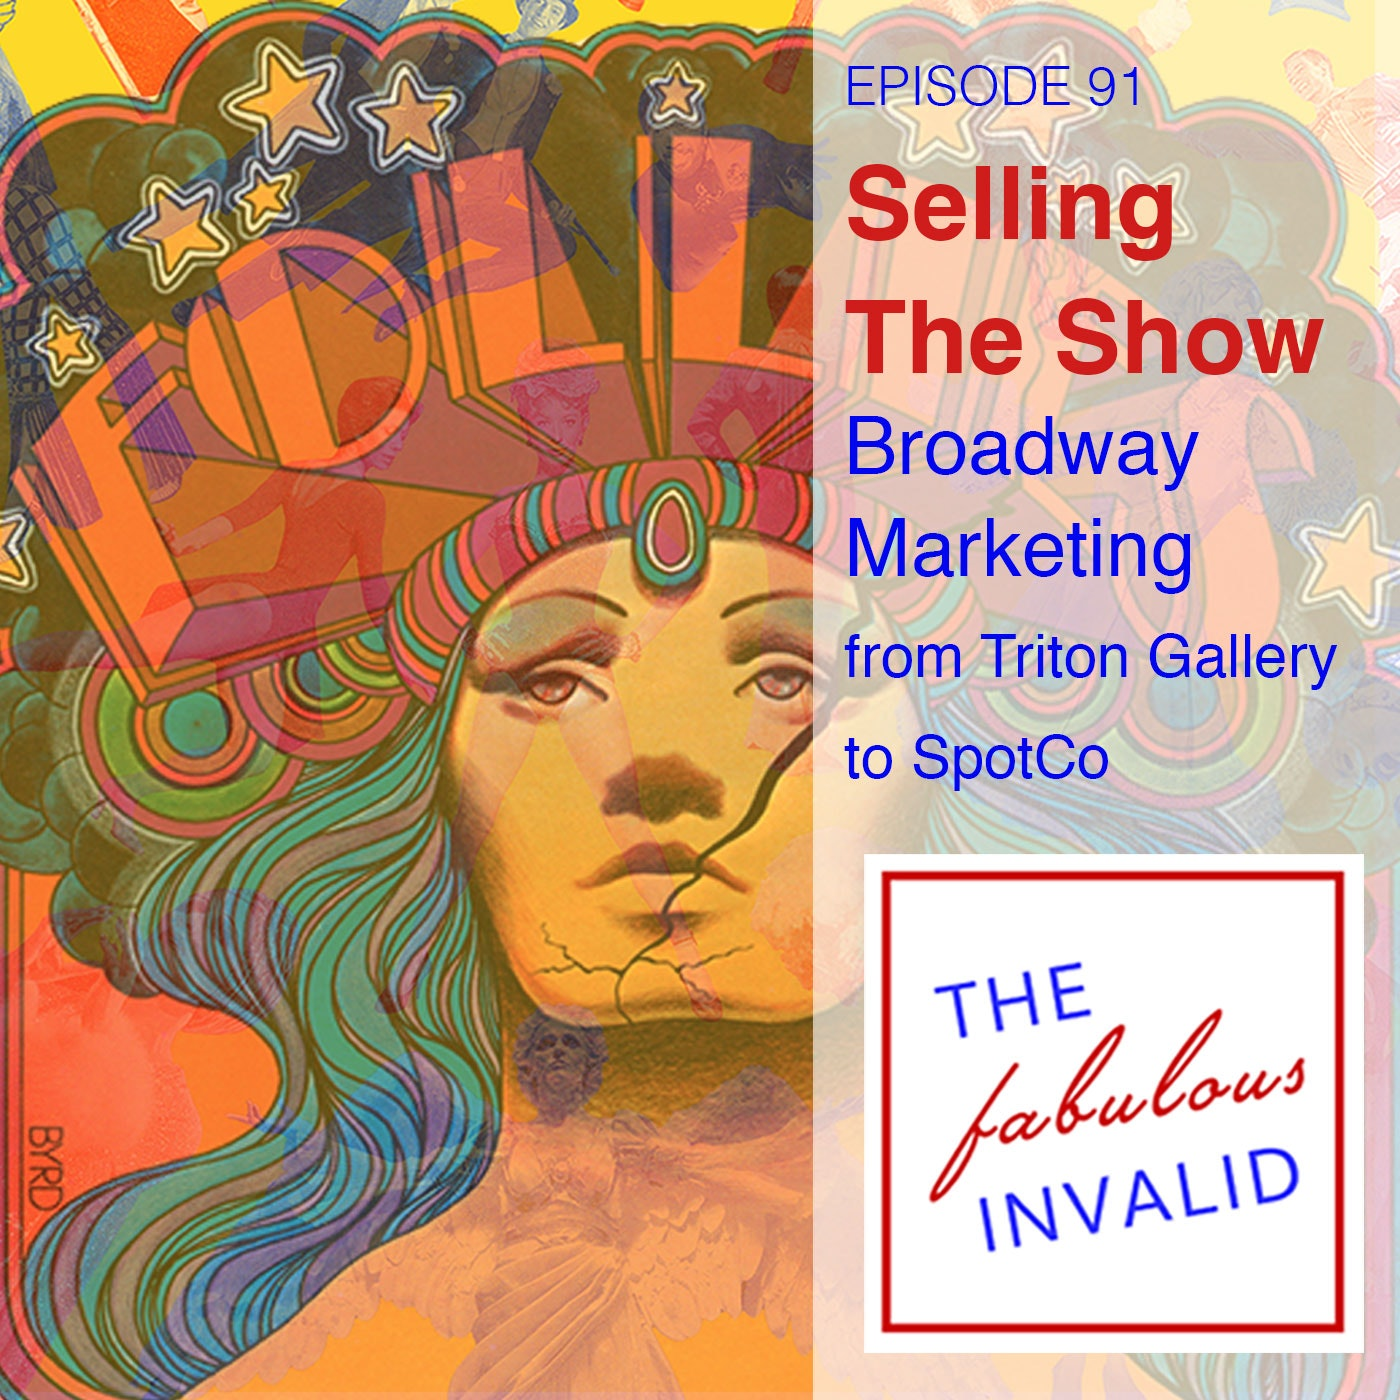 Episode 91: Selling the Show: Broadway Marketing, from Triton Gallery to SpotCo